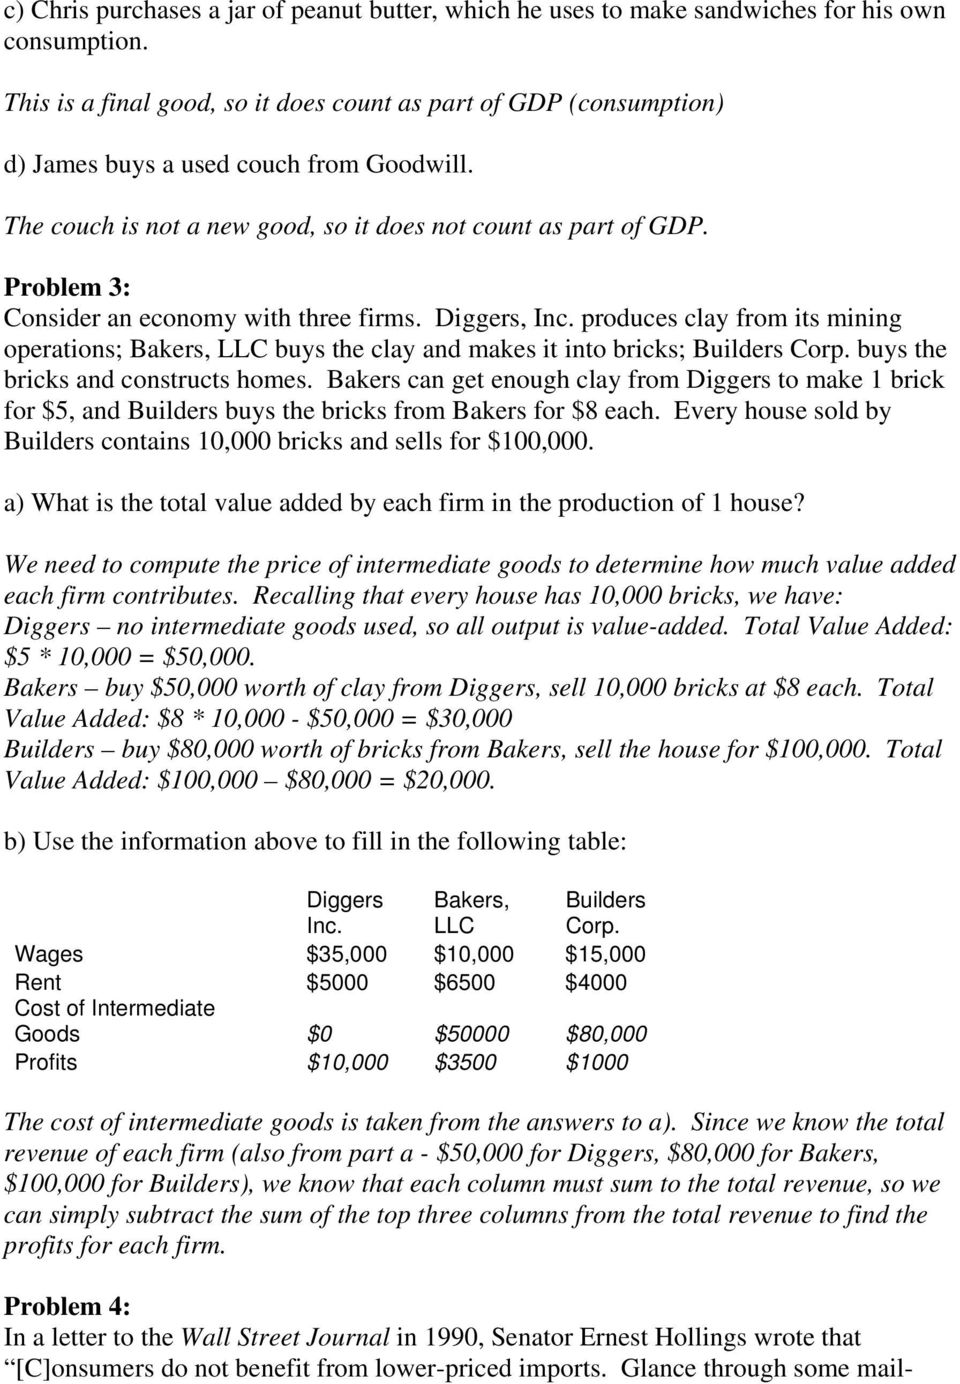 Problem 3: Consider an economy with three firms. Diggers, Inc. produces clay